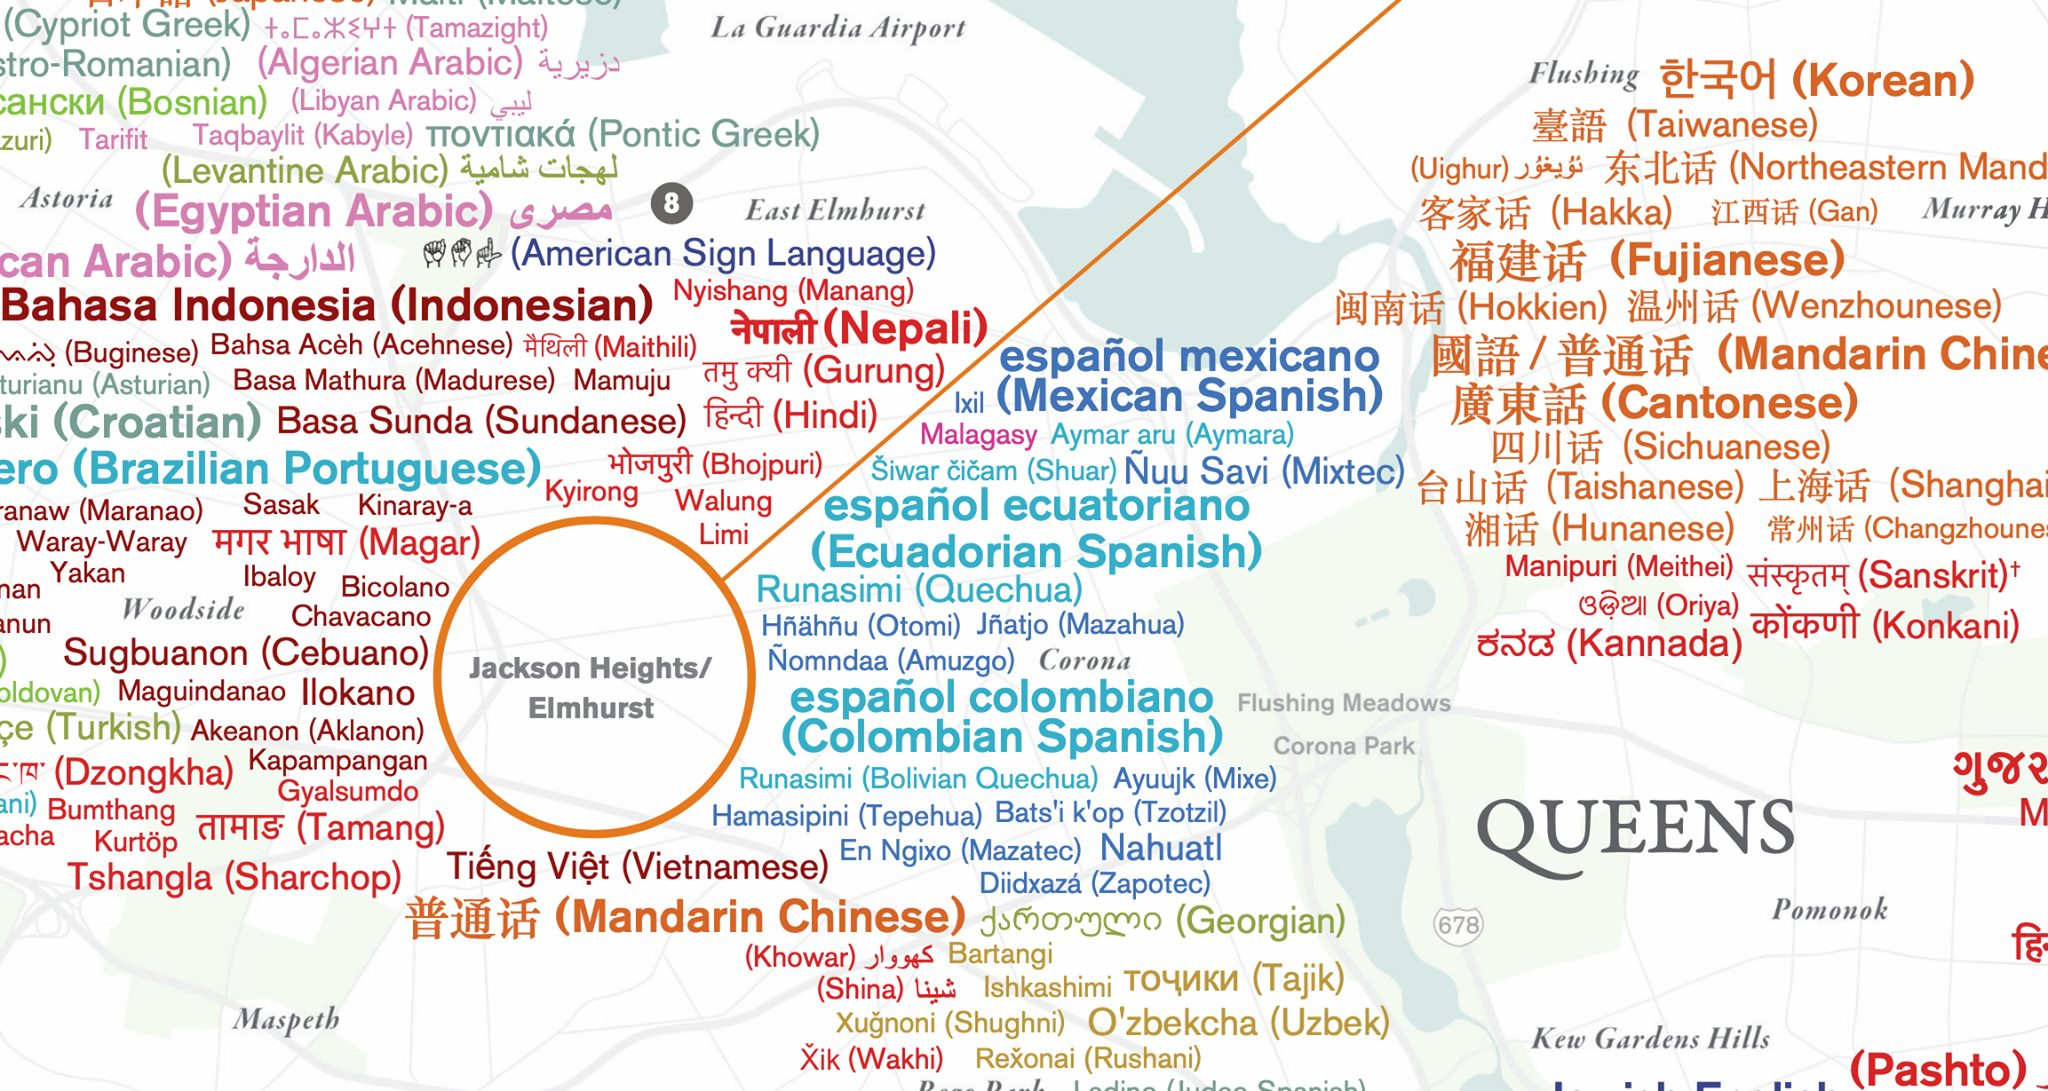 A Beautiful Map Showing the Wide Array of Languages Spoken Throughout the Five Boroughs of New York City